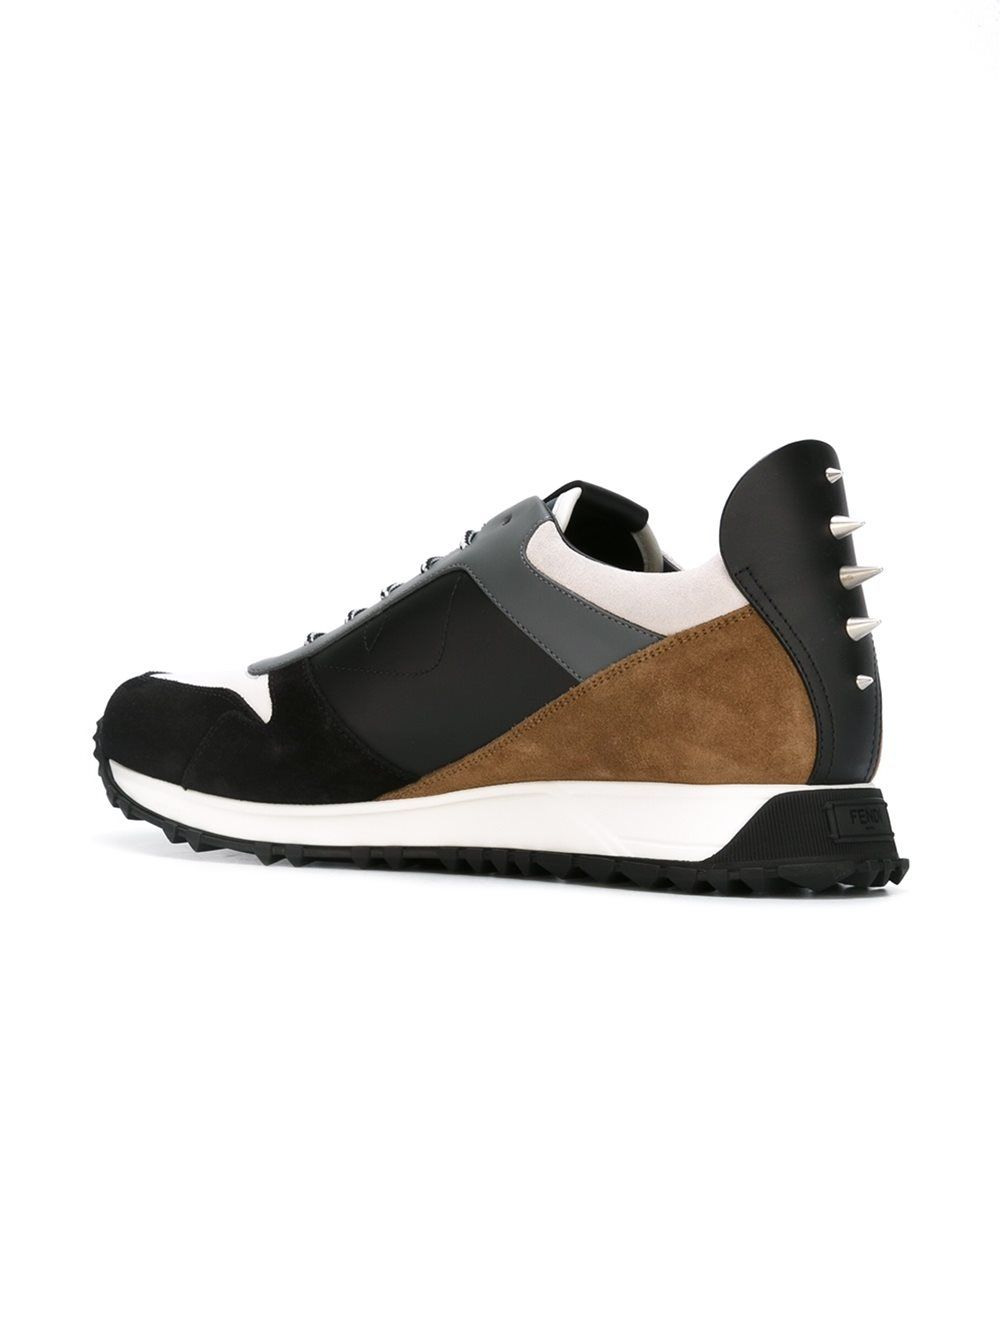 Fendi Bag Bugs sneakers   inspired shoes in 2019   Pinterest ... 08694e4a455